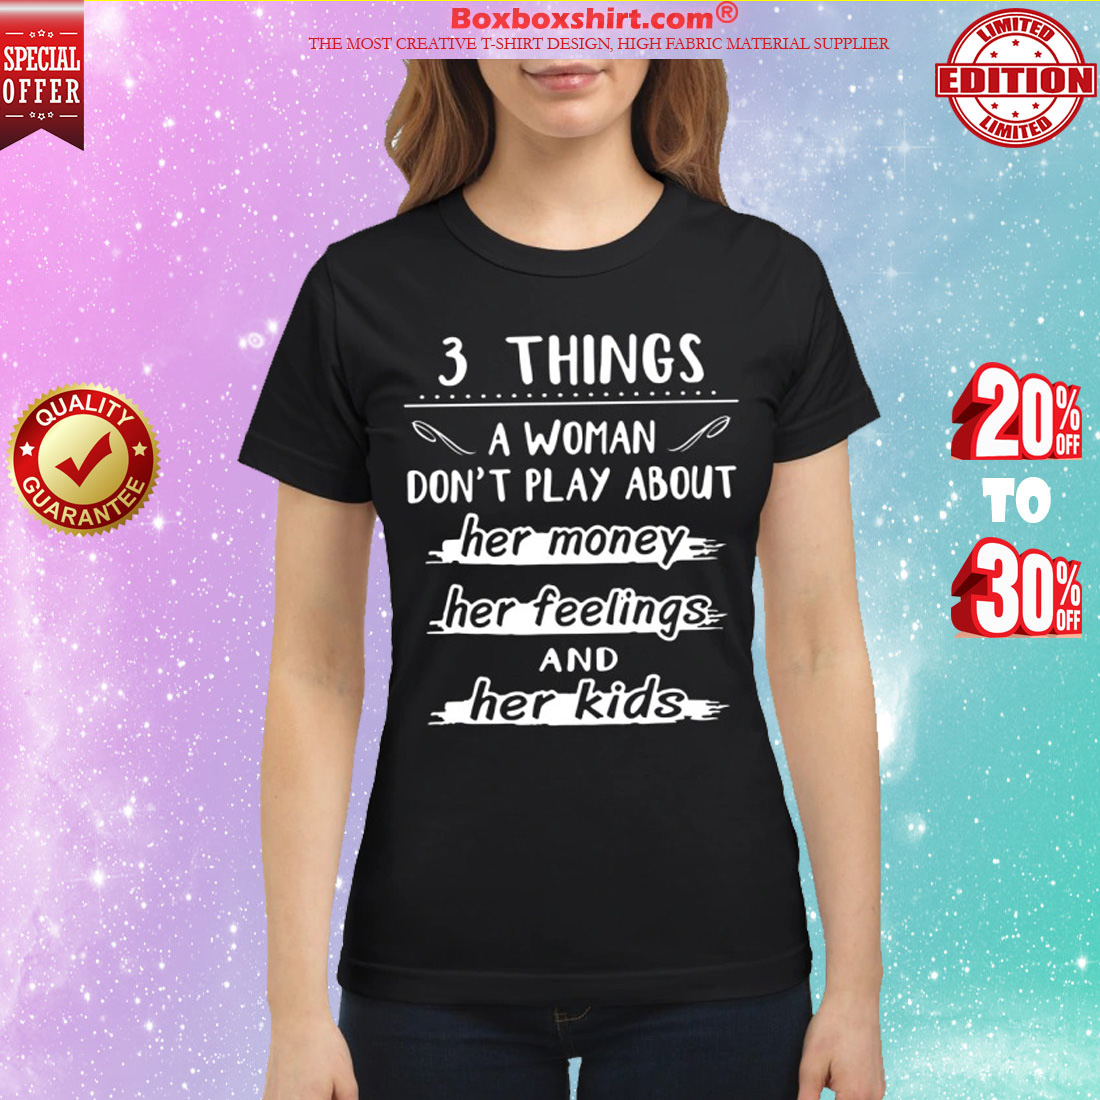 3 things the woman don't play about her money her feelings and her kids classic shirt